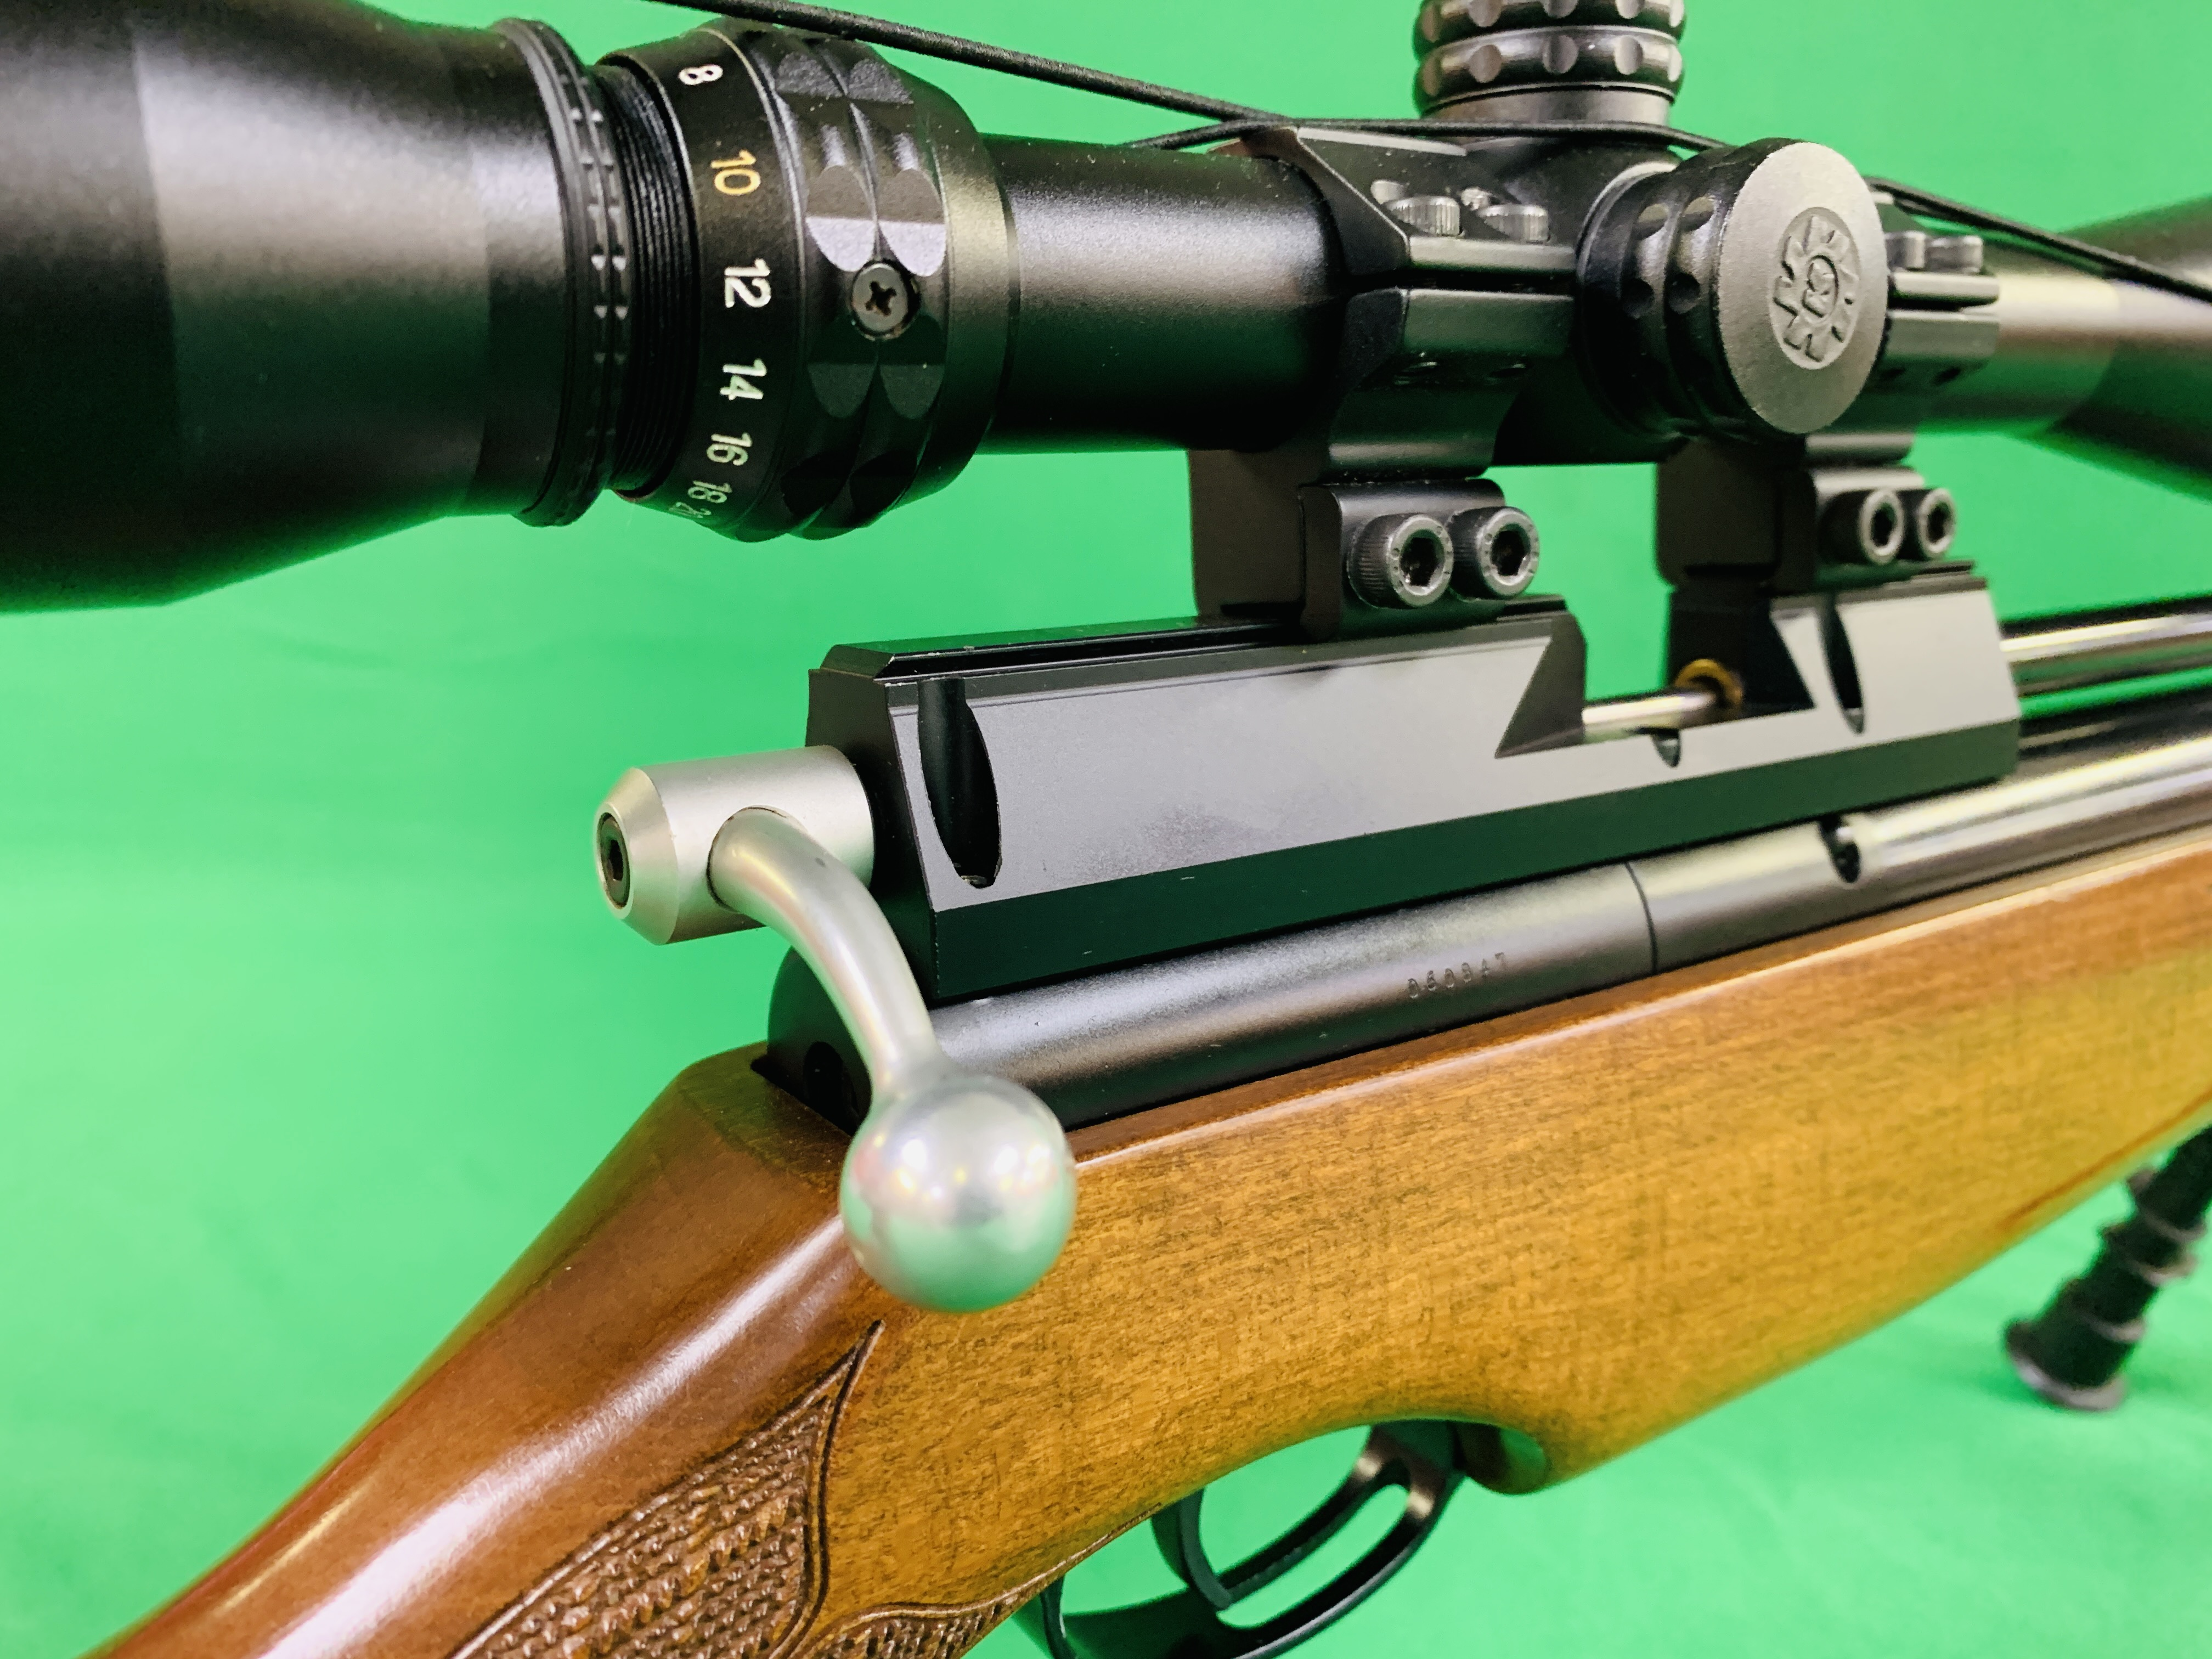 AIR ARMS S400 CLASSIC .177 BOLT ACTION PCP AIR RIFLE FITTED WITH BONUS 6. - Image 11 of 17